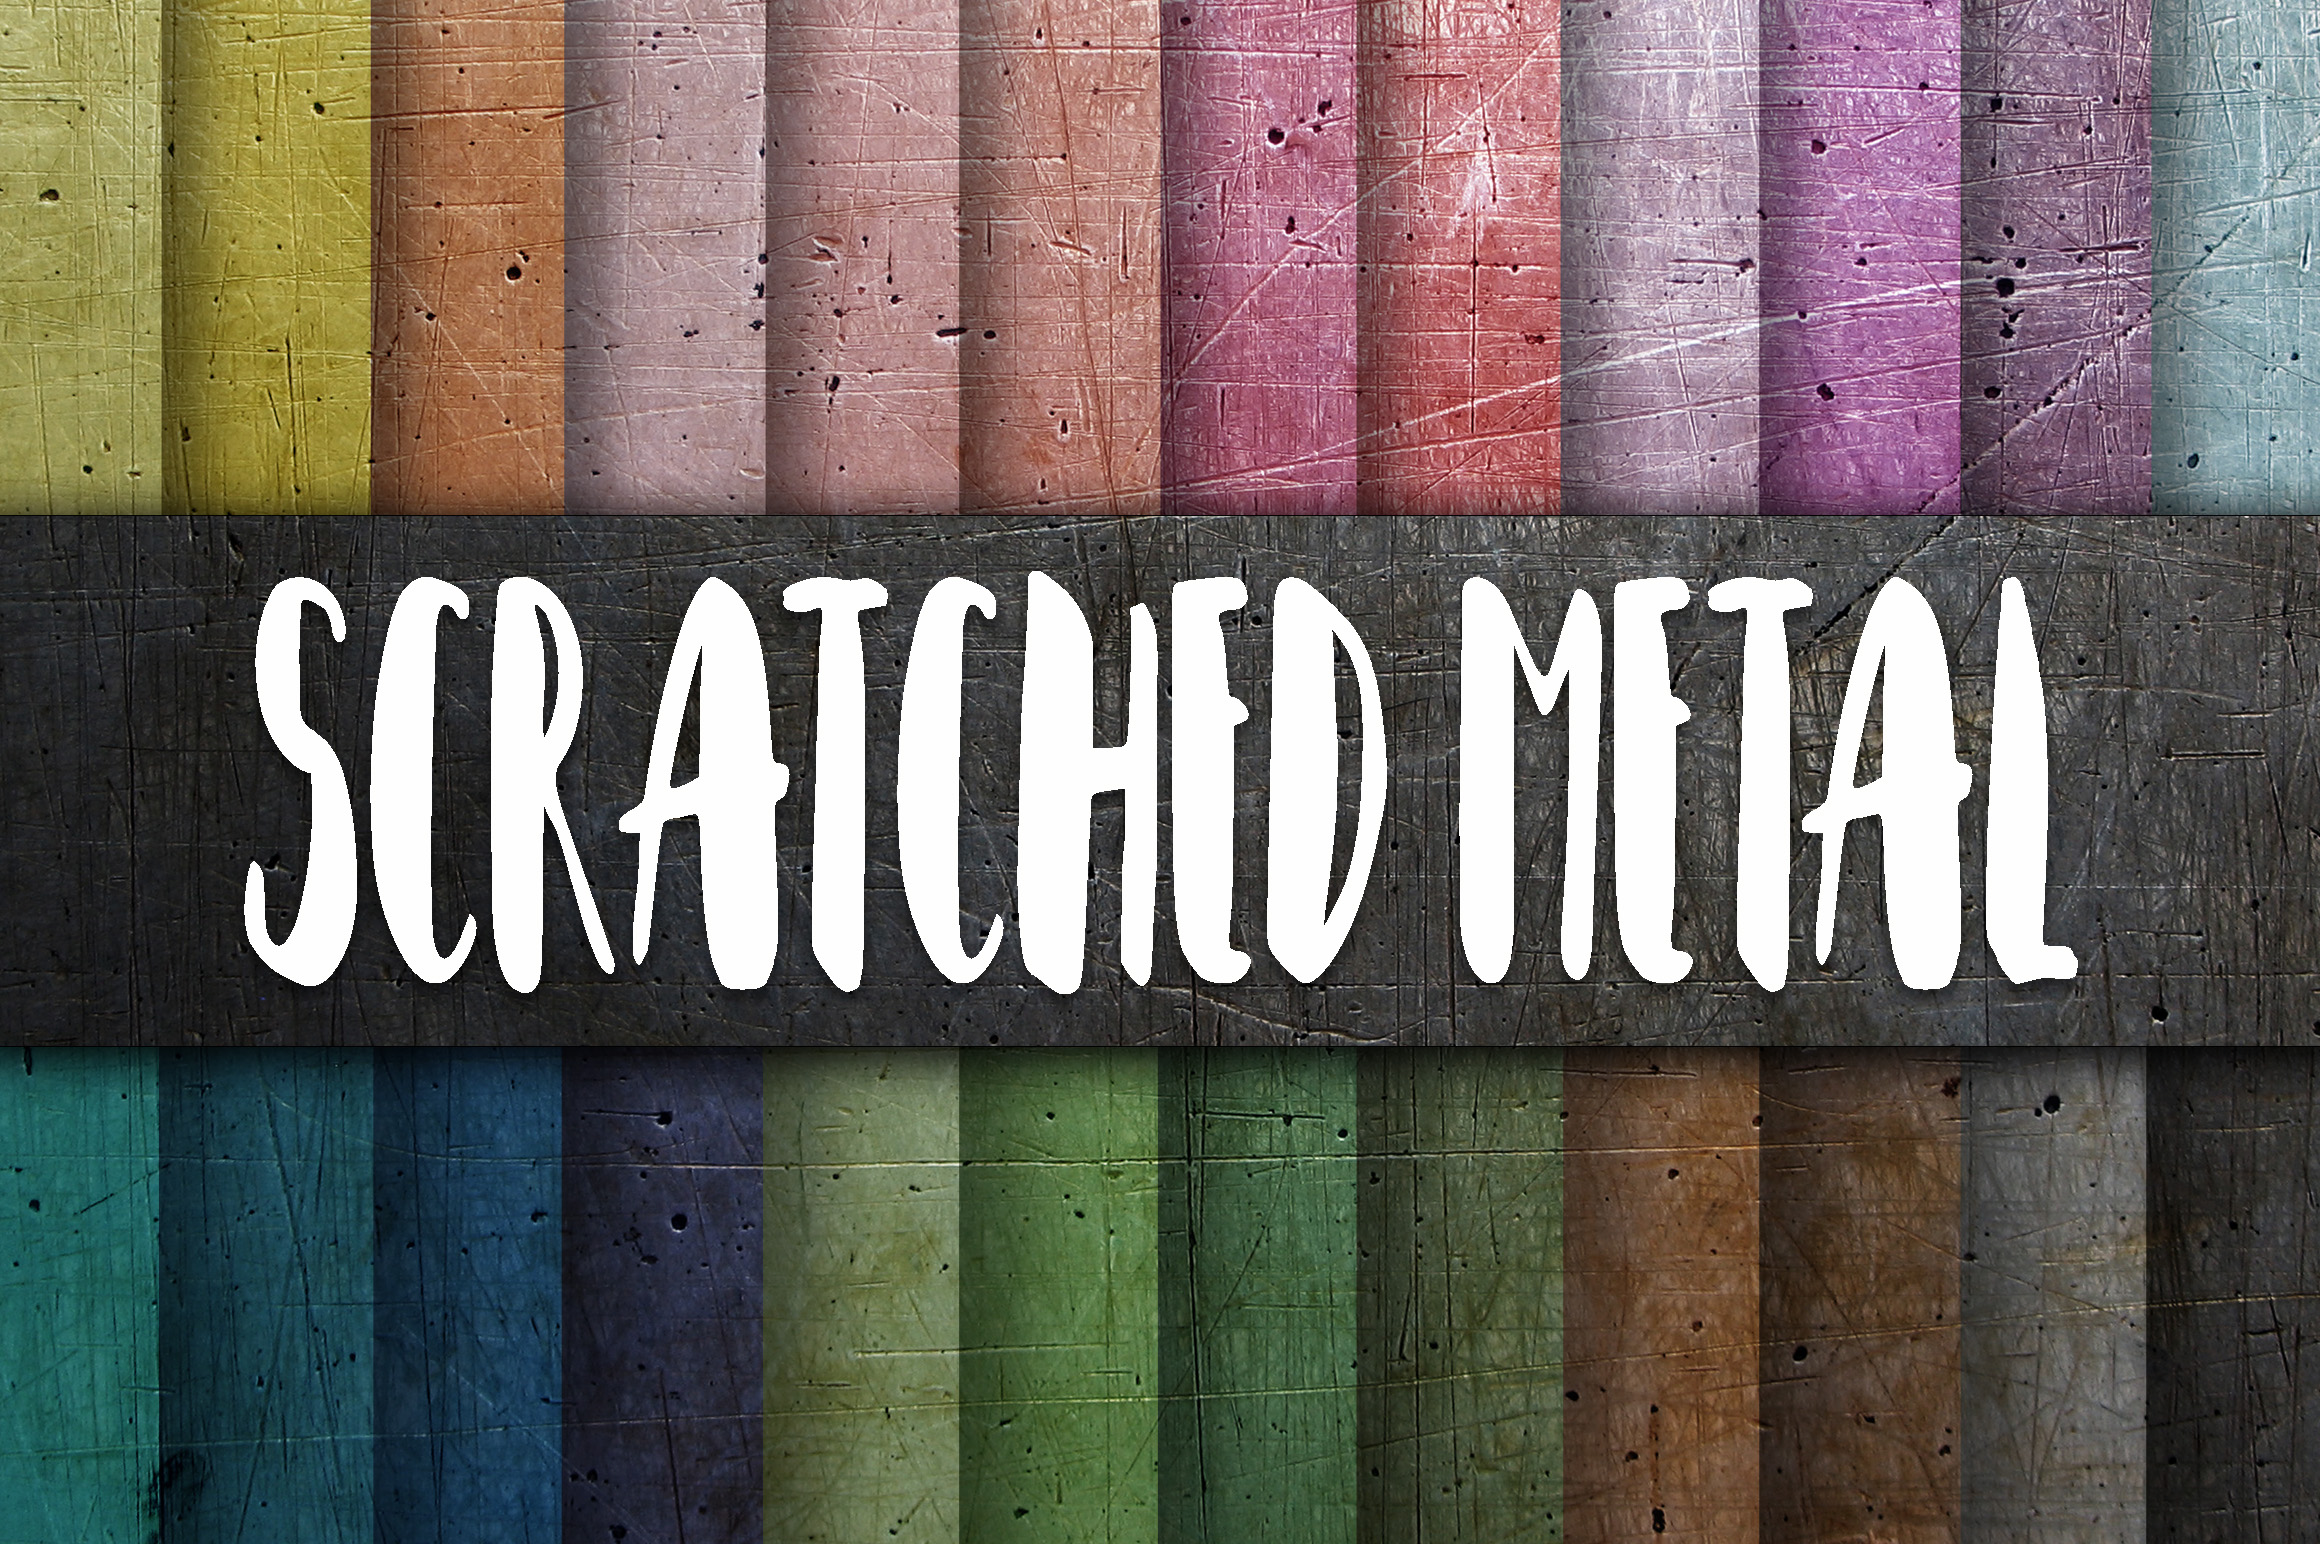 Scratched Metal Textures Digital Paper Graphic Backgrounds By oldmarketdesigns